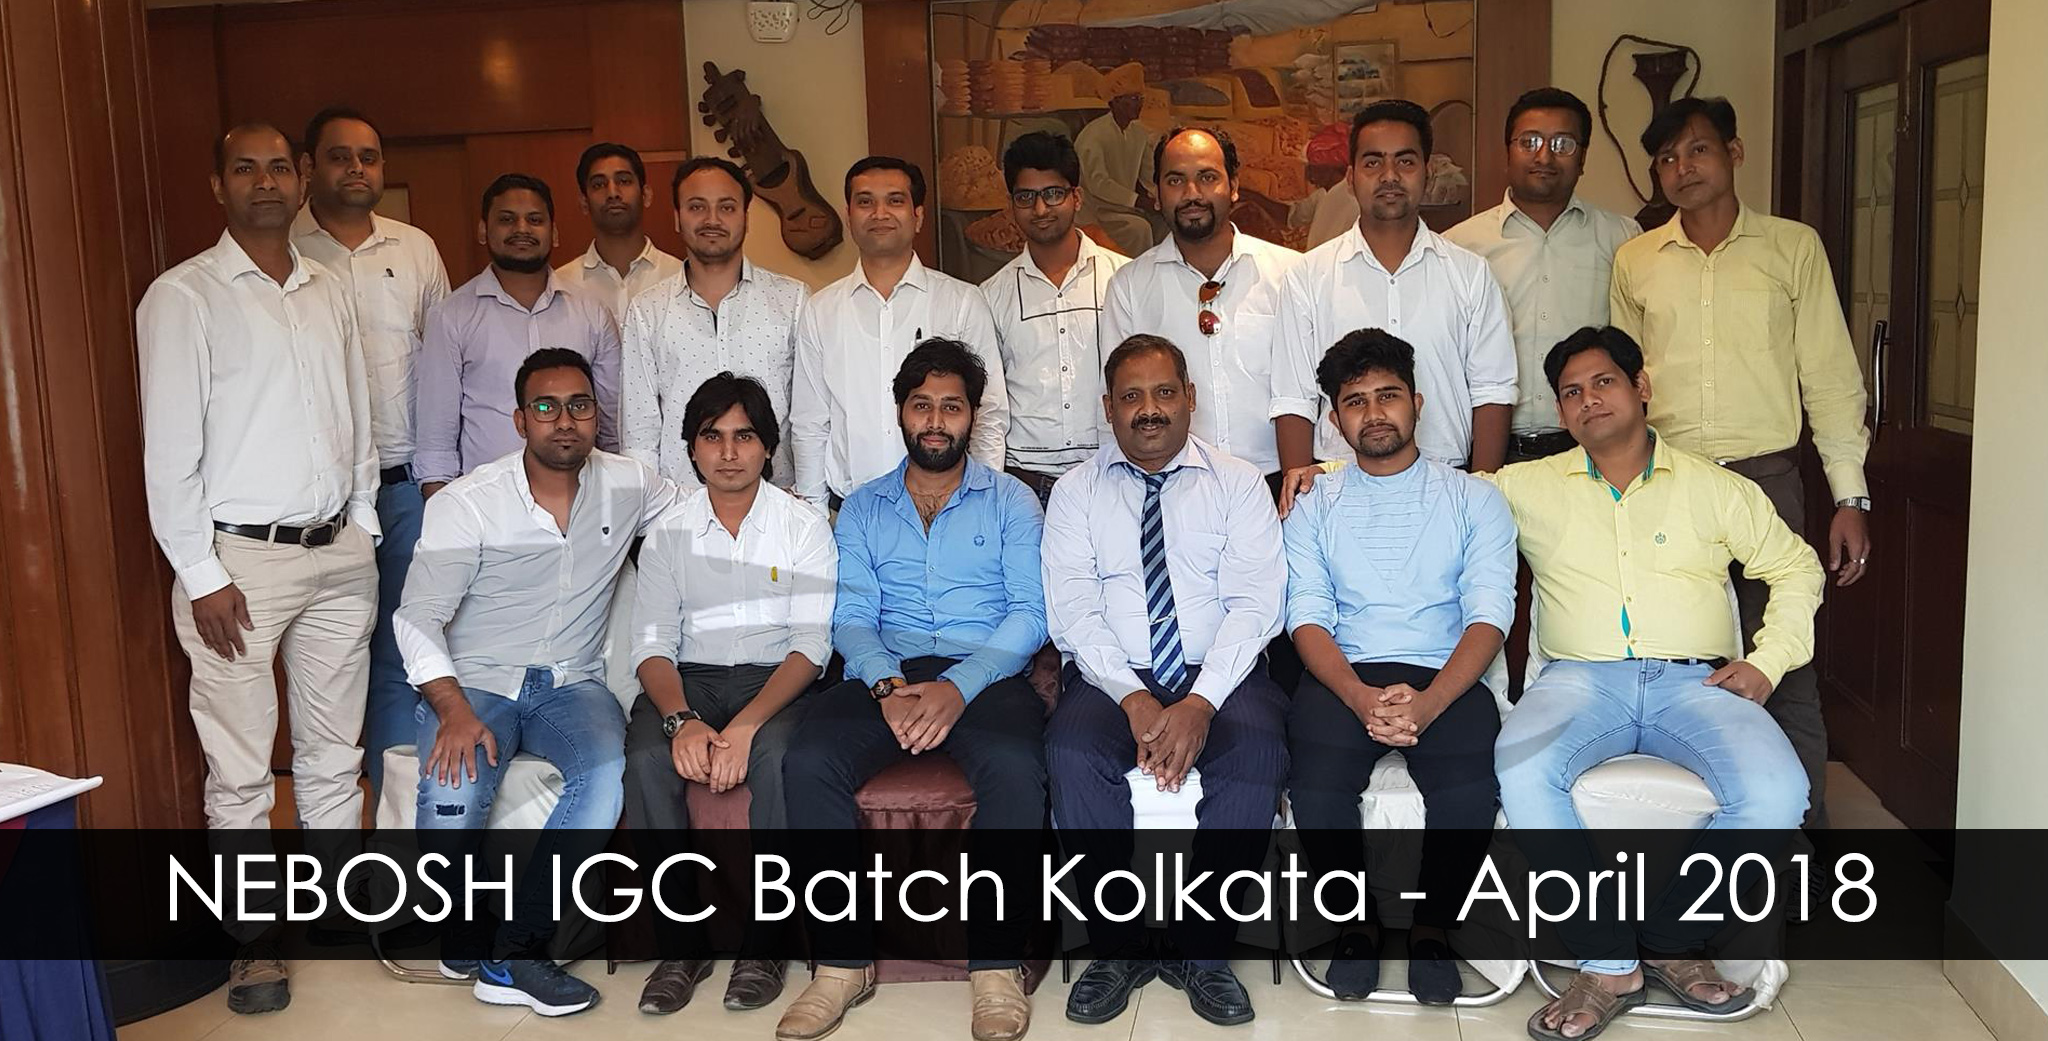 NEBOSH-IGC-Batch-Kolkata---April-2018_02